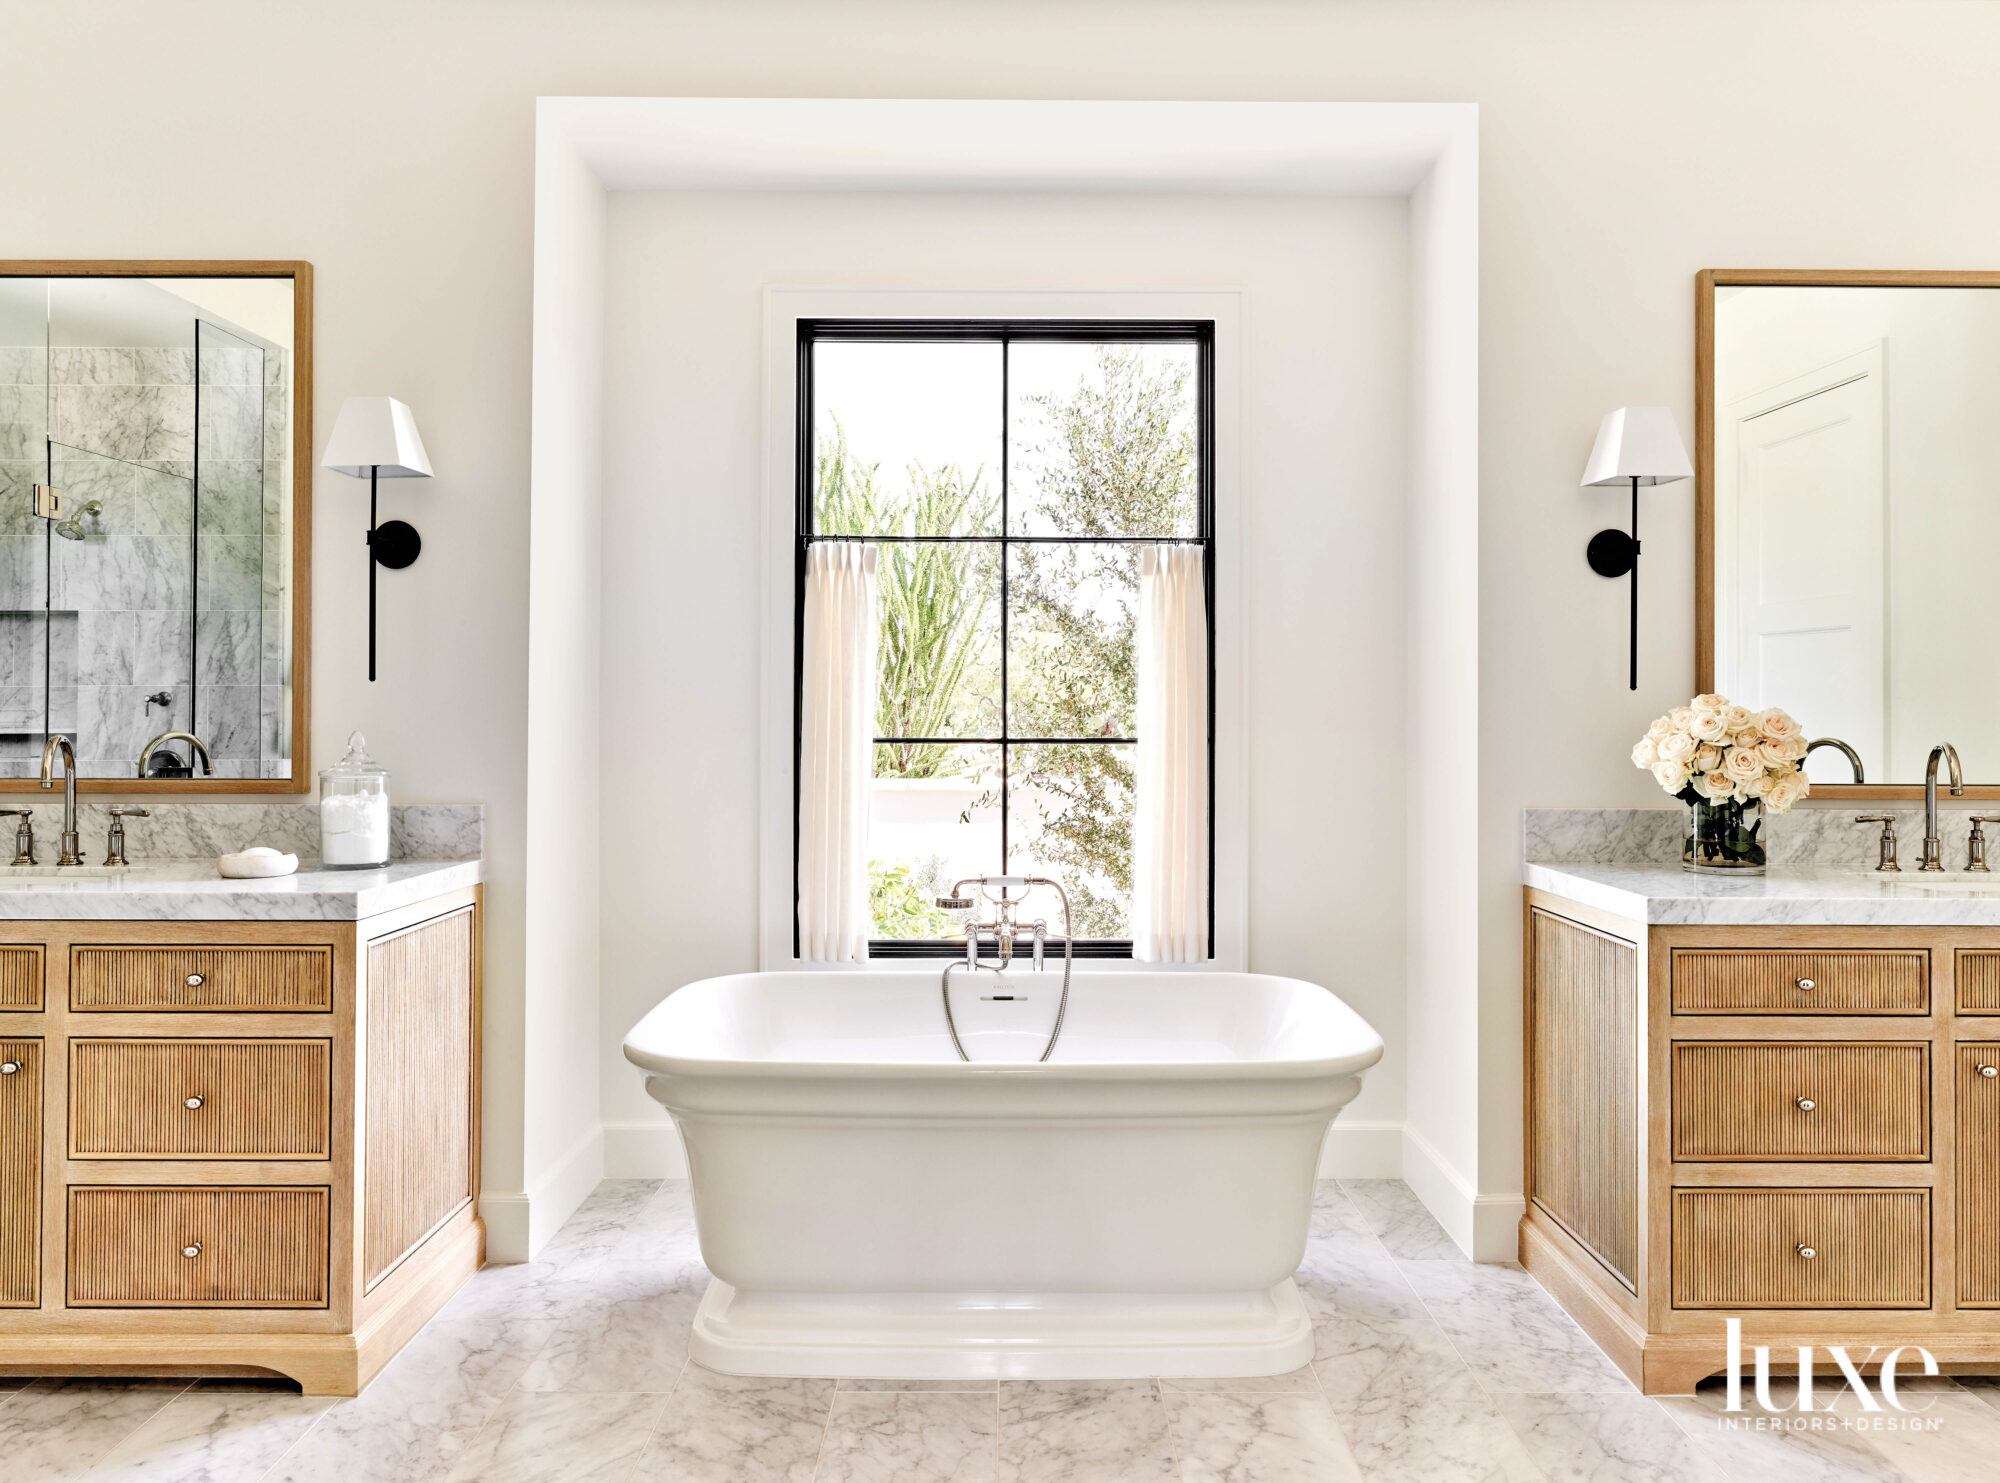 A standalone tub in front...